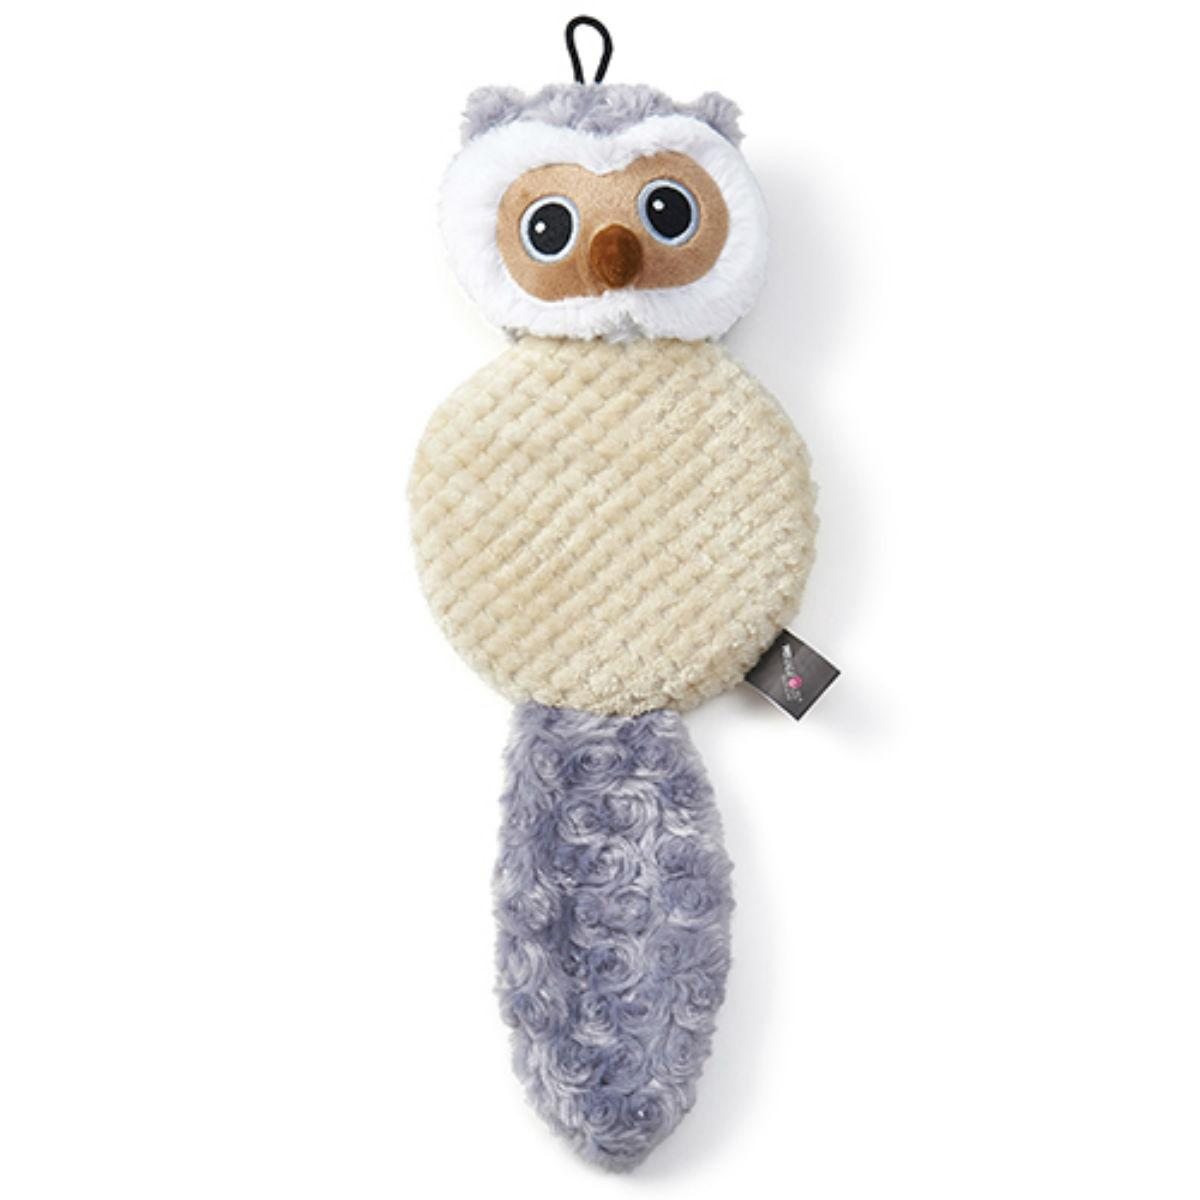 CritterRageous Dog Toy - Owl